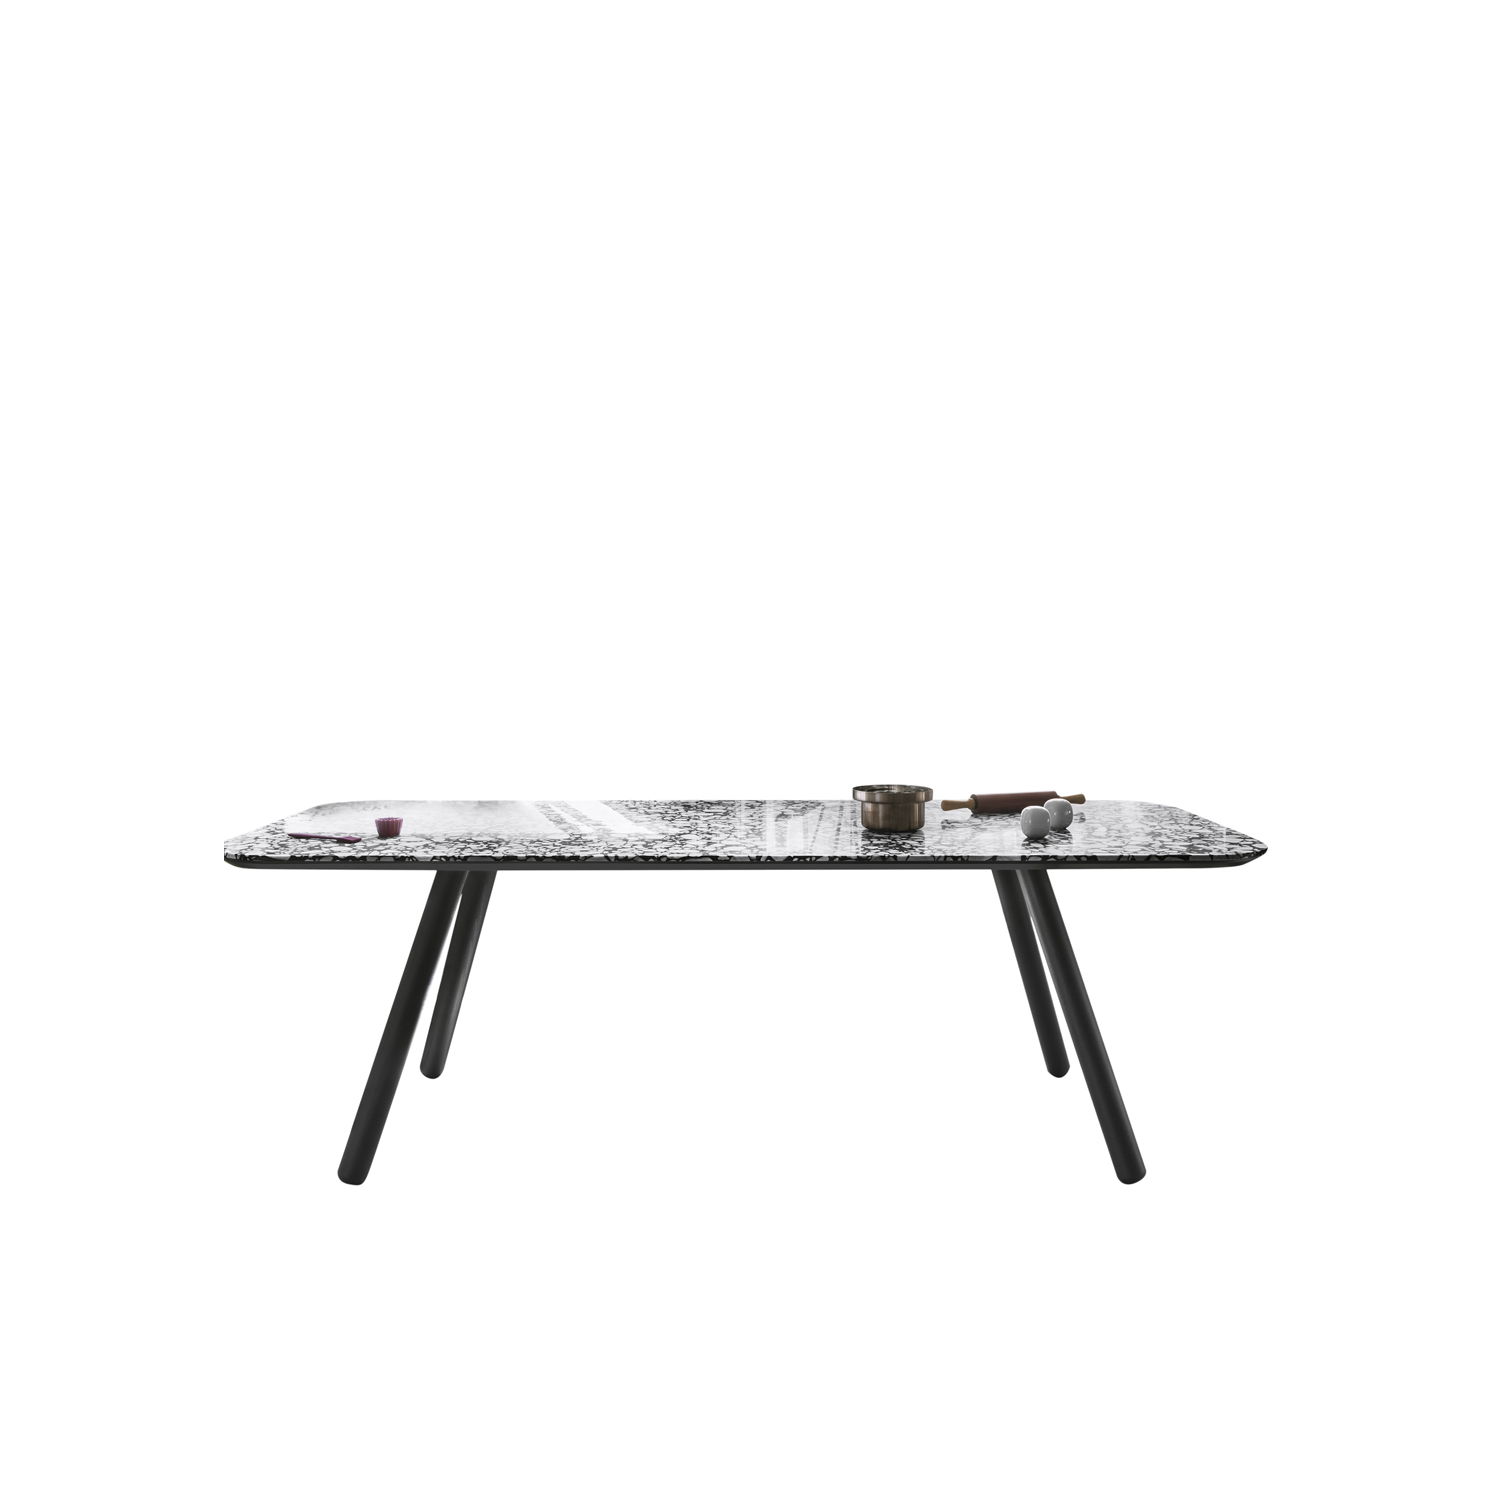 Pixie Marble Dining Table - Pixie is available with oval or rectangular top in Palladio Moro Marble. The legs are lacquered in natural beech, grey aniline or black aniline.